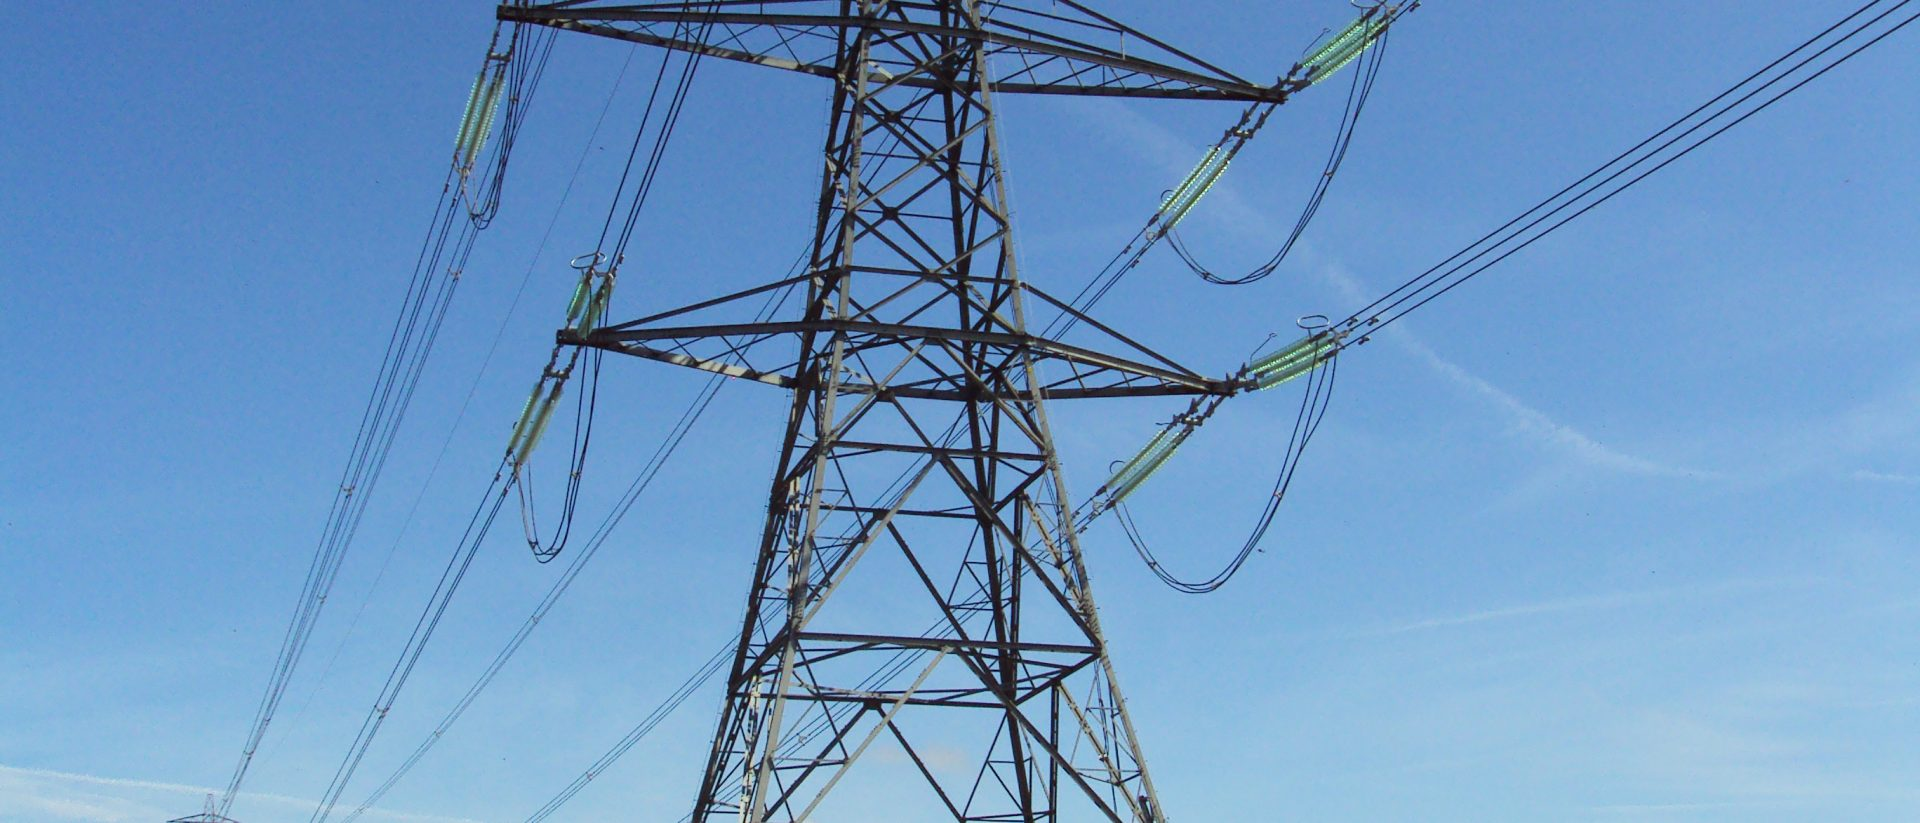 national grid stokc